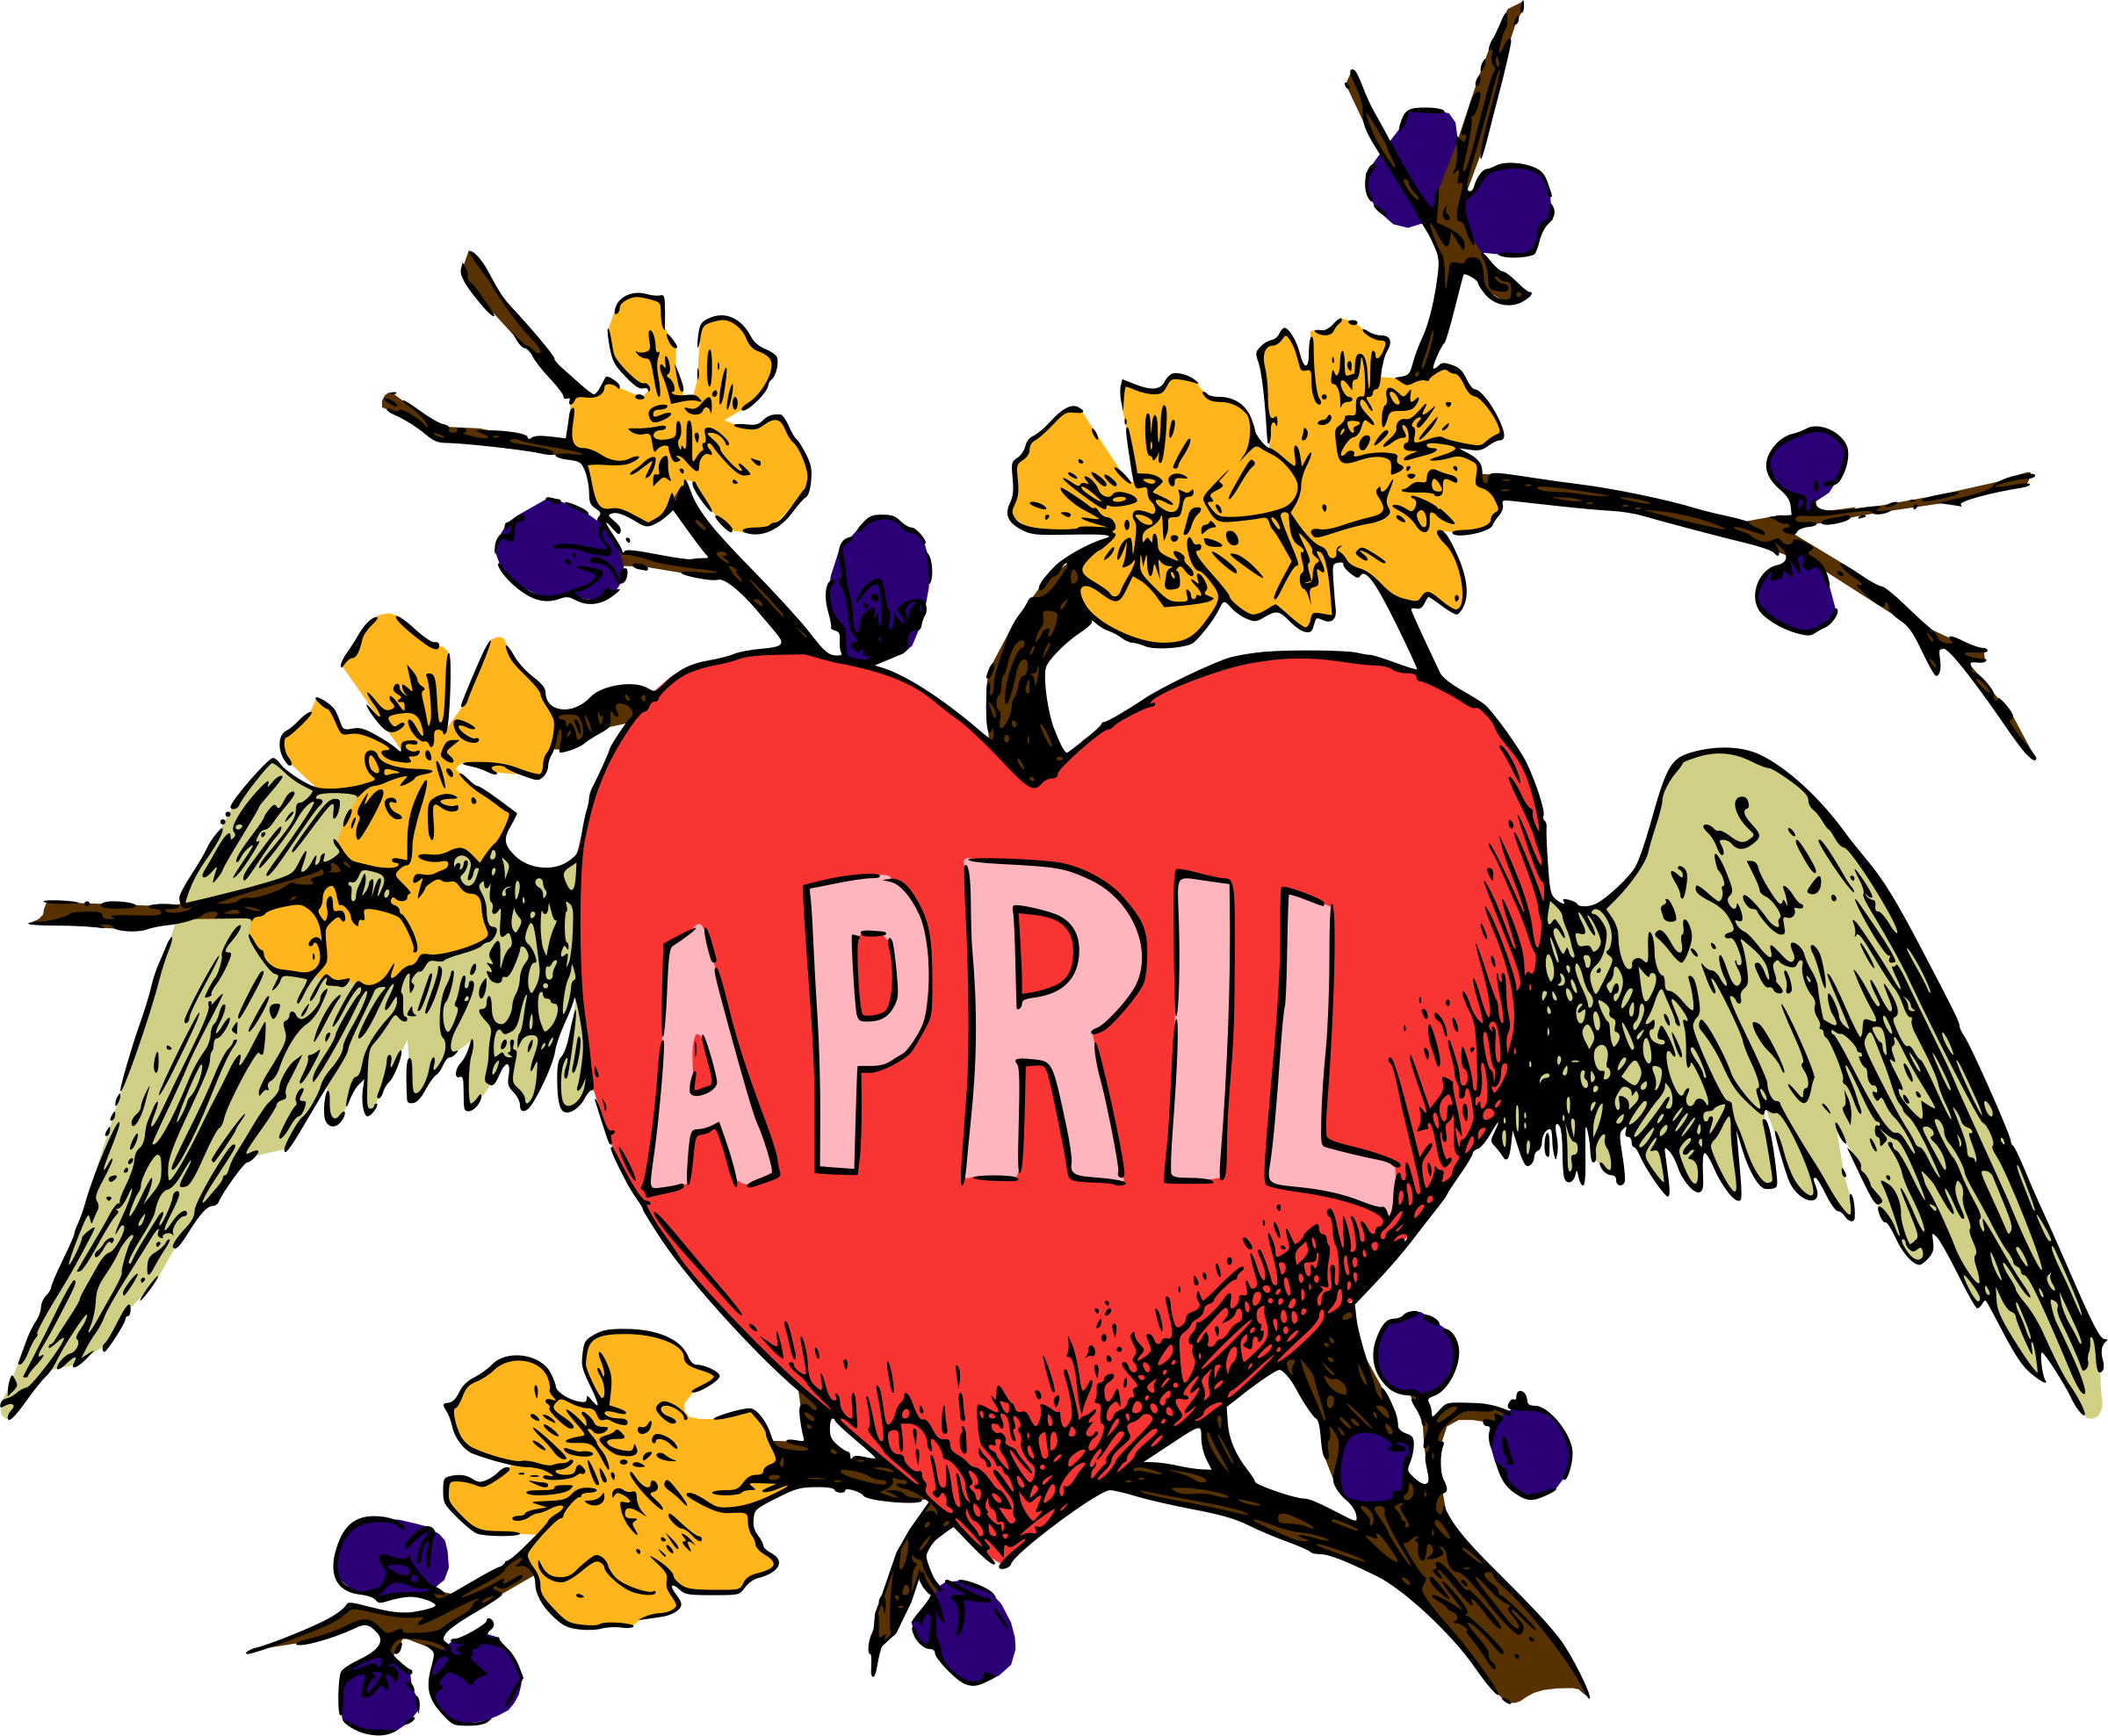 April images clipart banner Clipart - Illustrated months (April, colour) banner